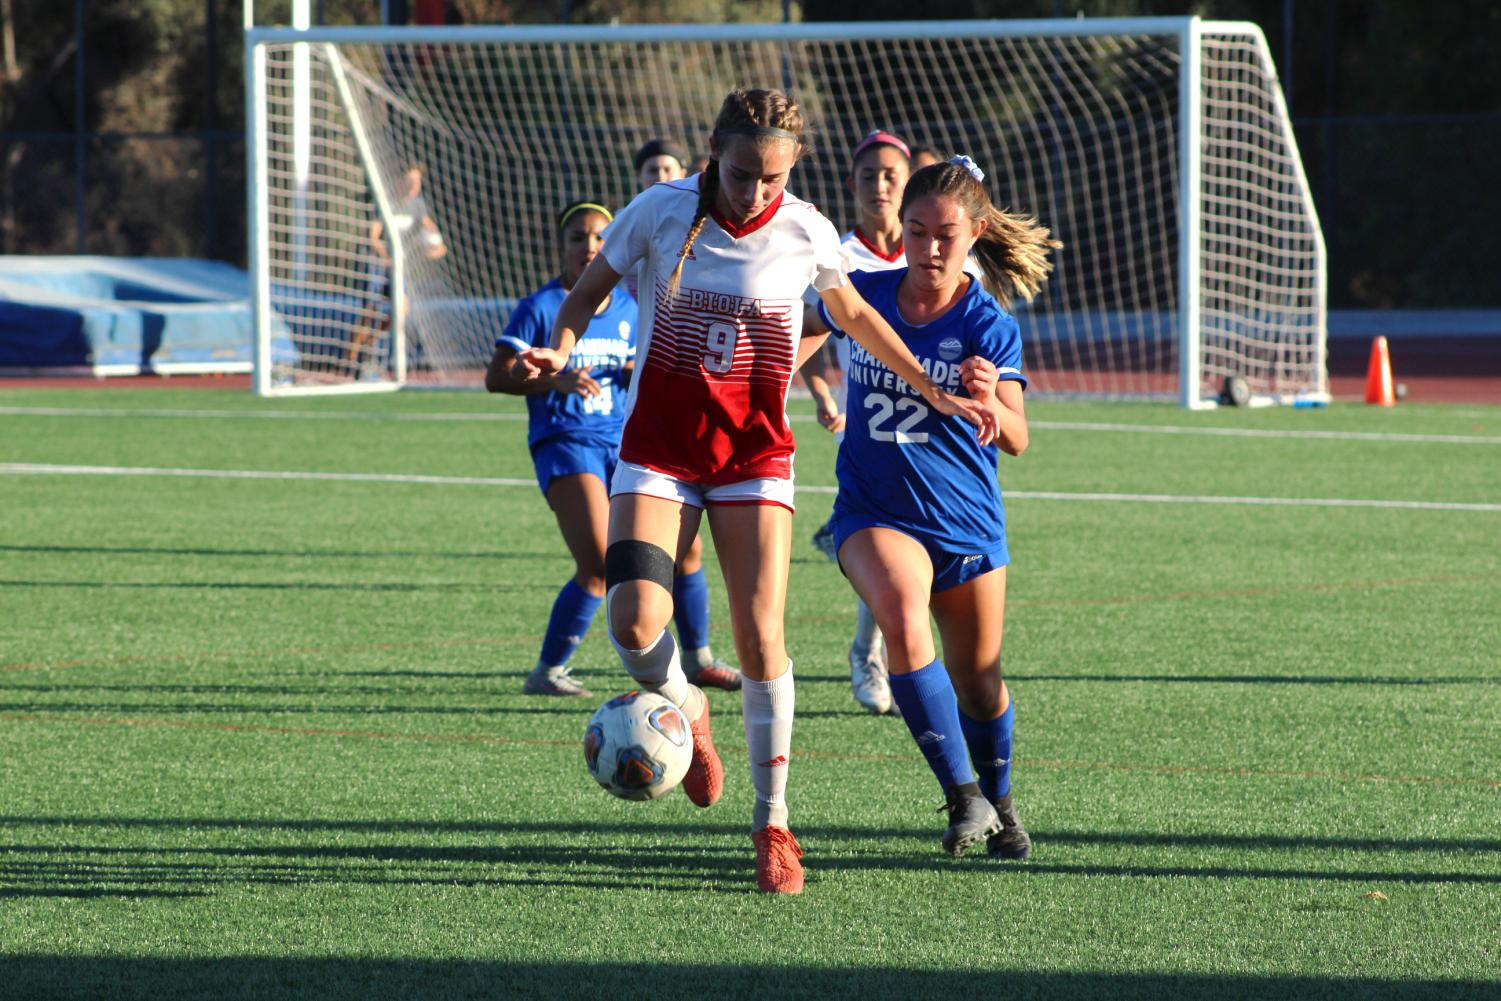 Freshman Christine Goodman, Forward, dribbles the ball away from her opponent during their game against Chaminade Hawaii University on October 31, 2019.